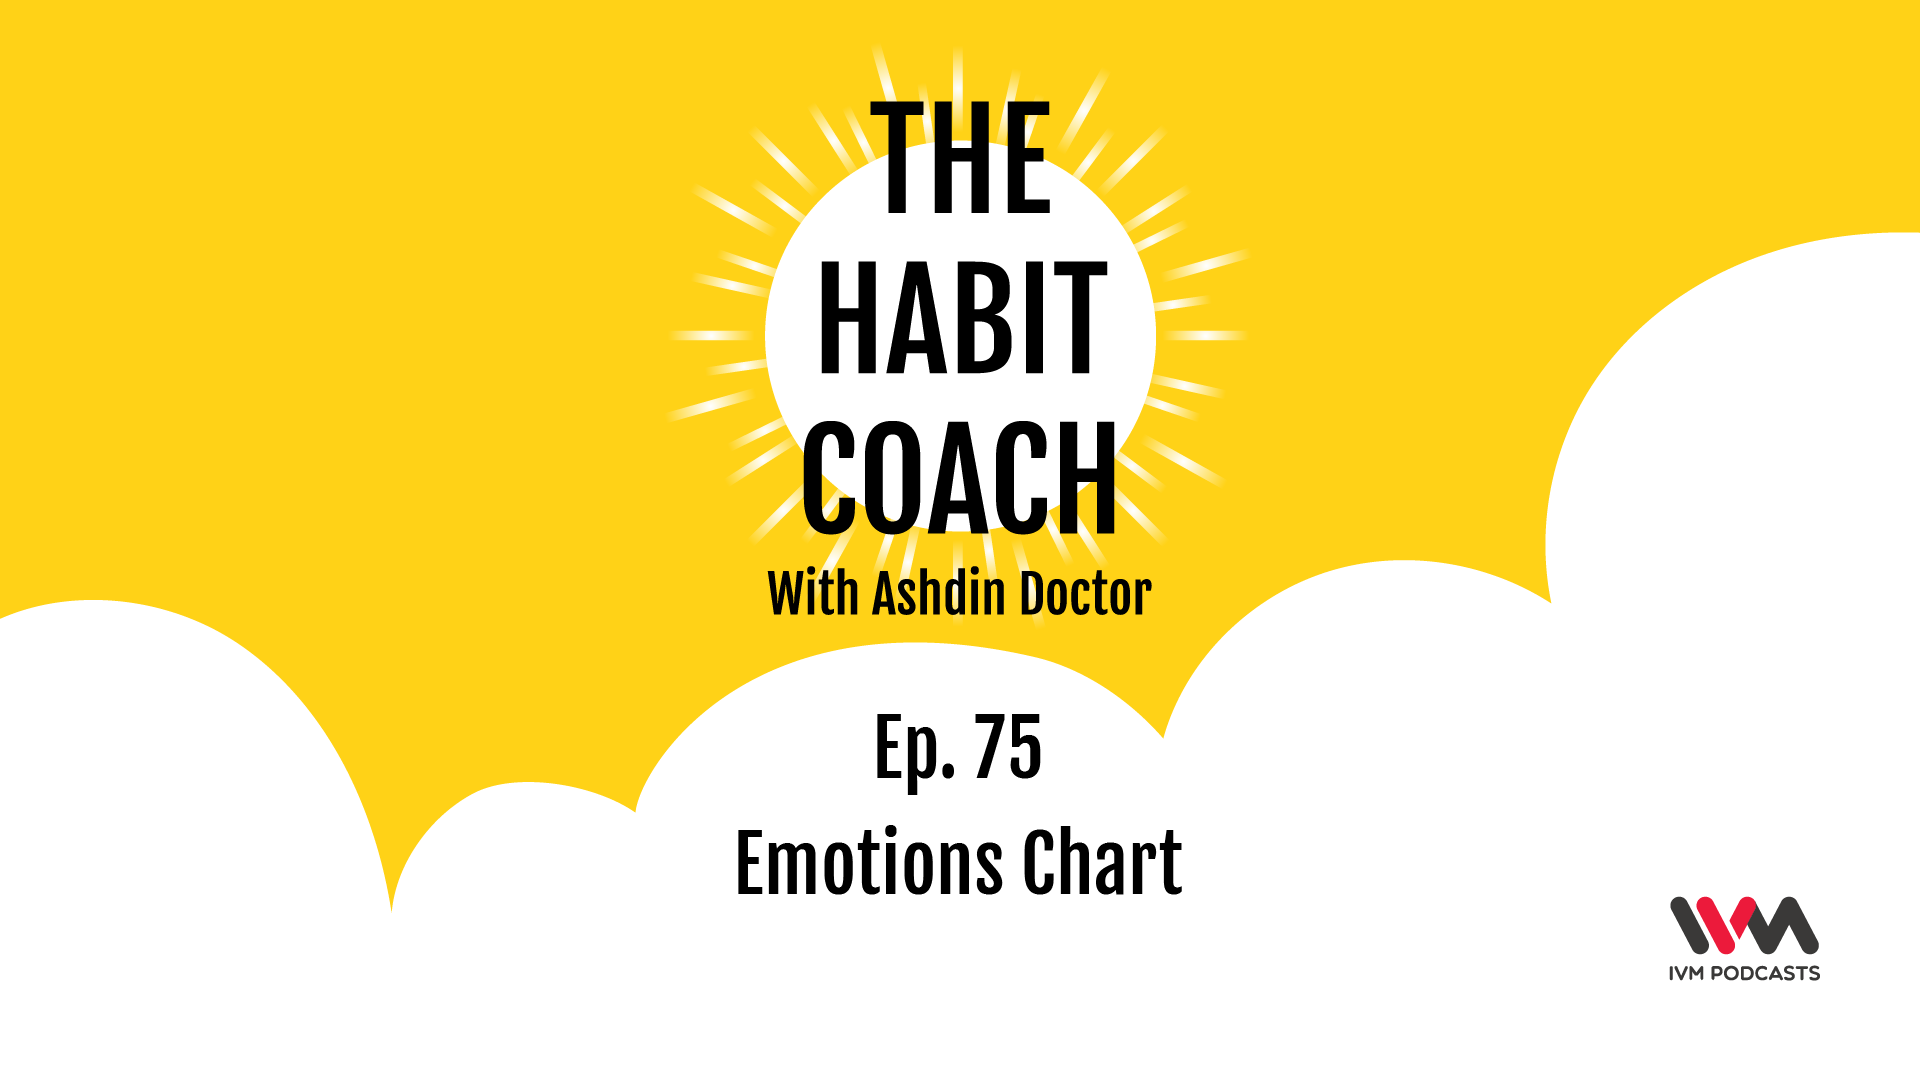 TheHabitCoachEpisode75.png